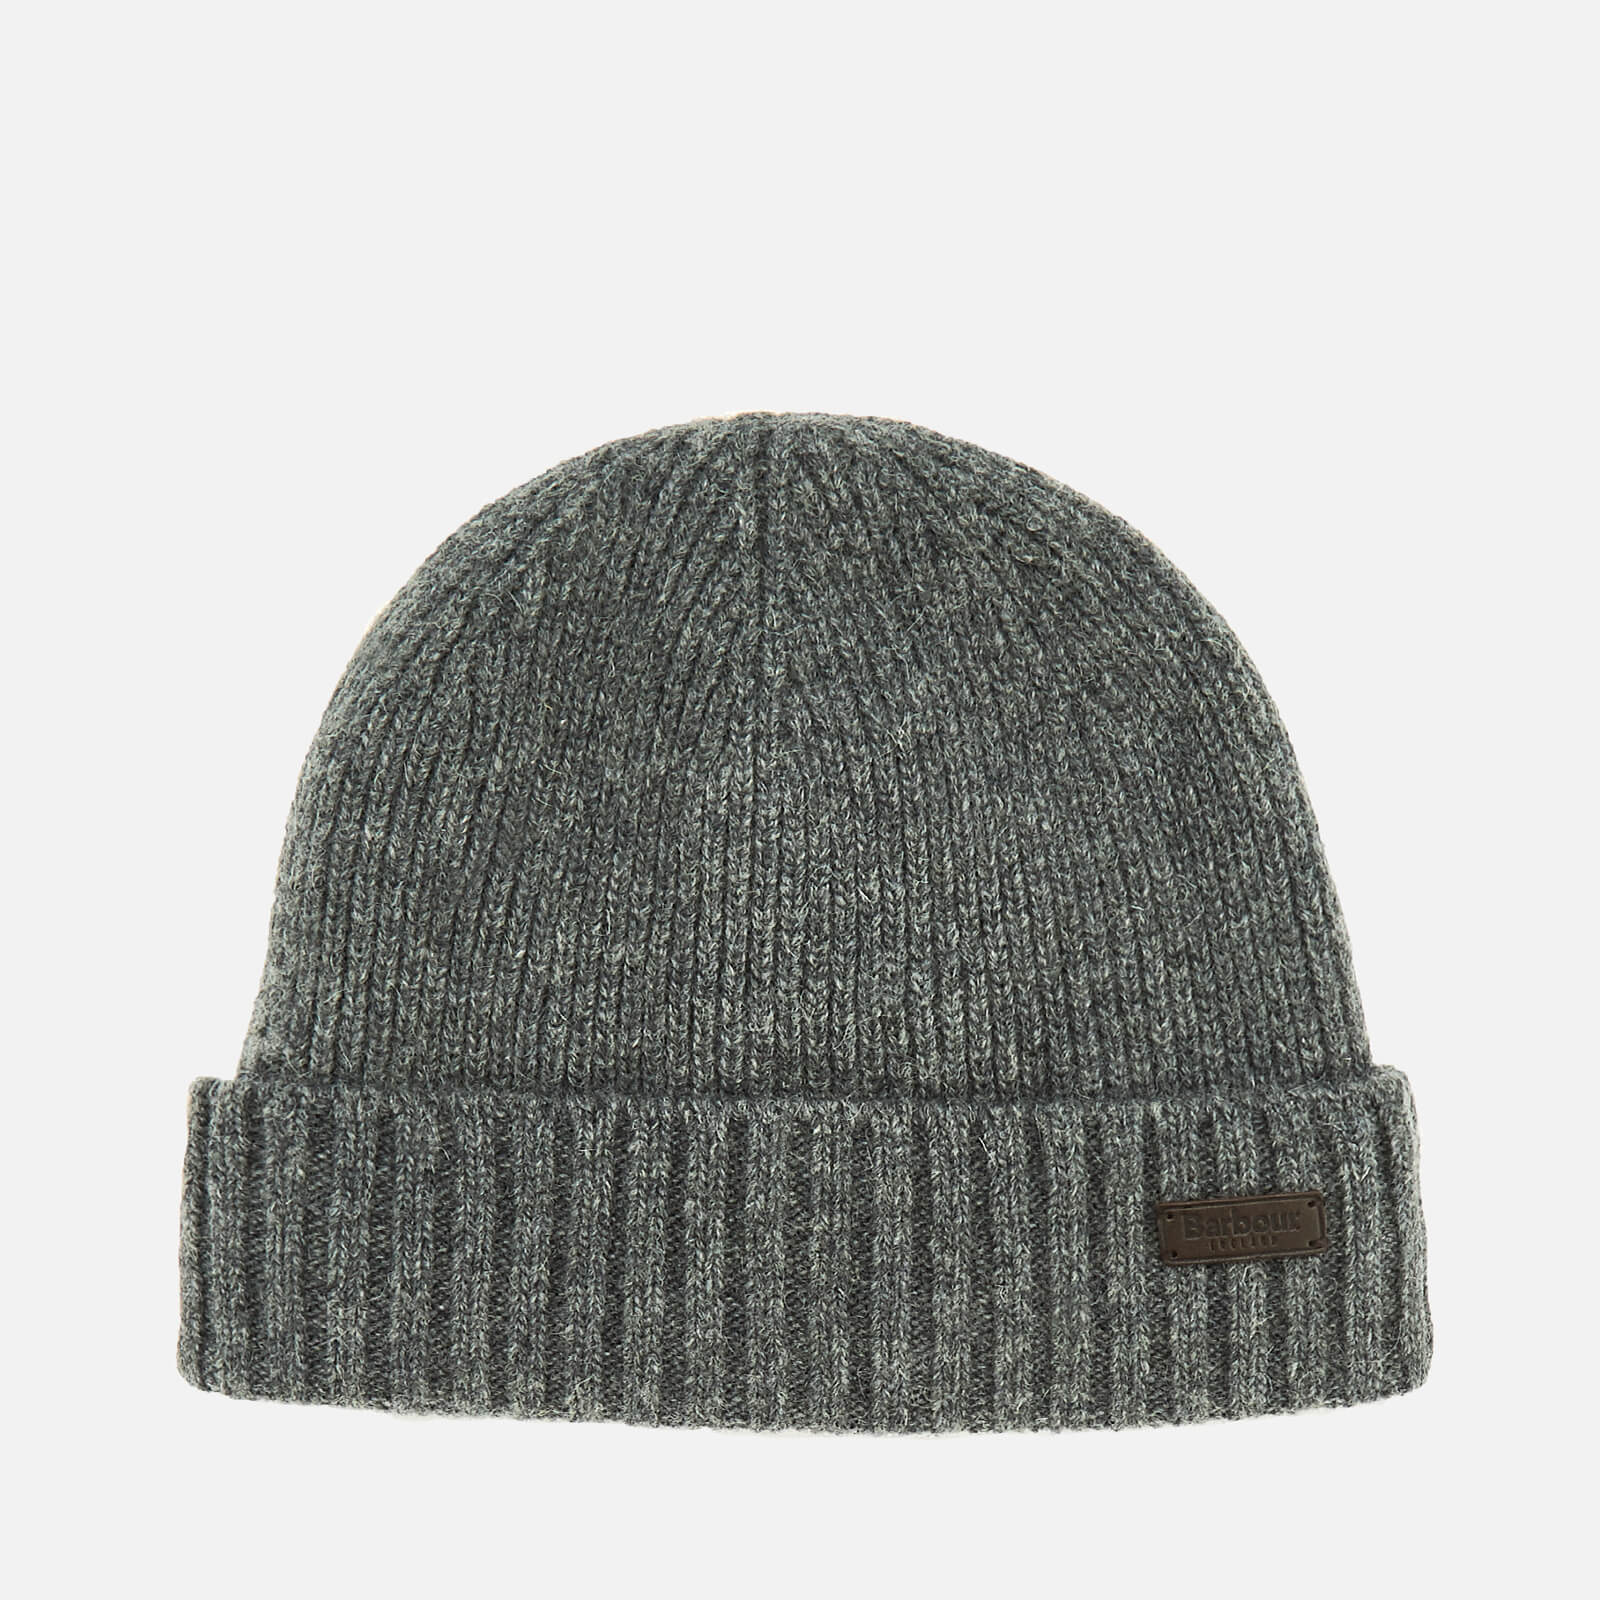 603397d40a0c7 Barbour Men s Carlton Beanie Hat - Grey - Free UK Delivery over £50